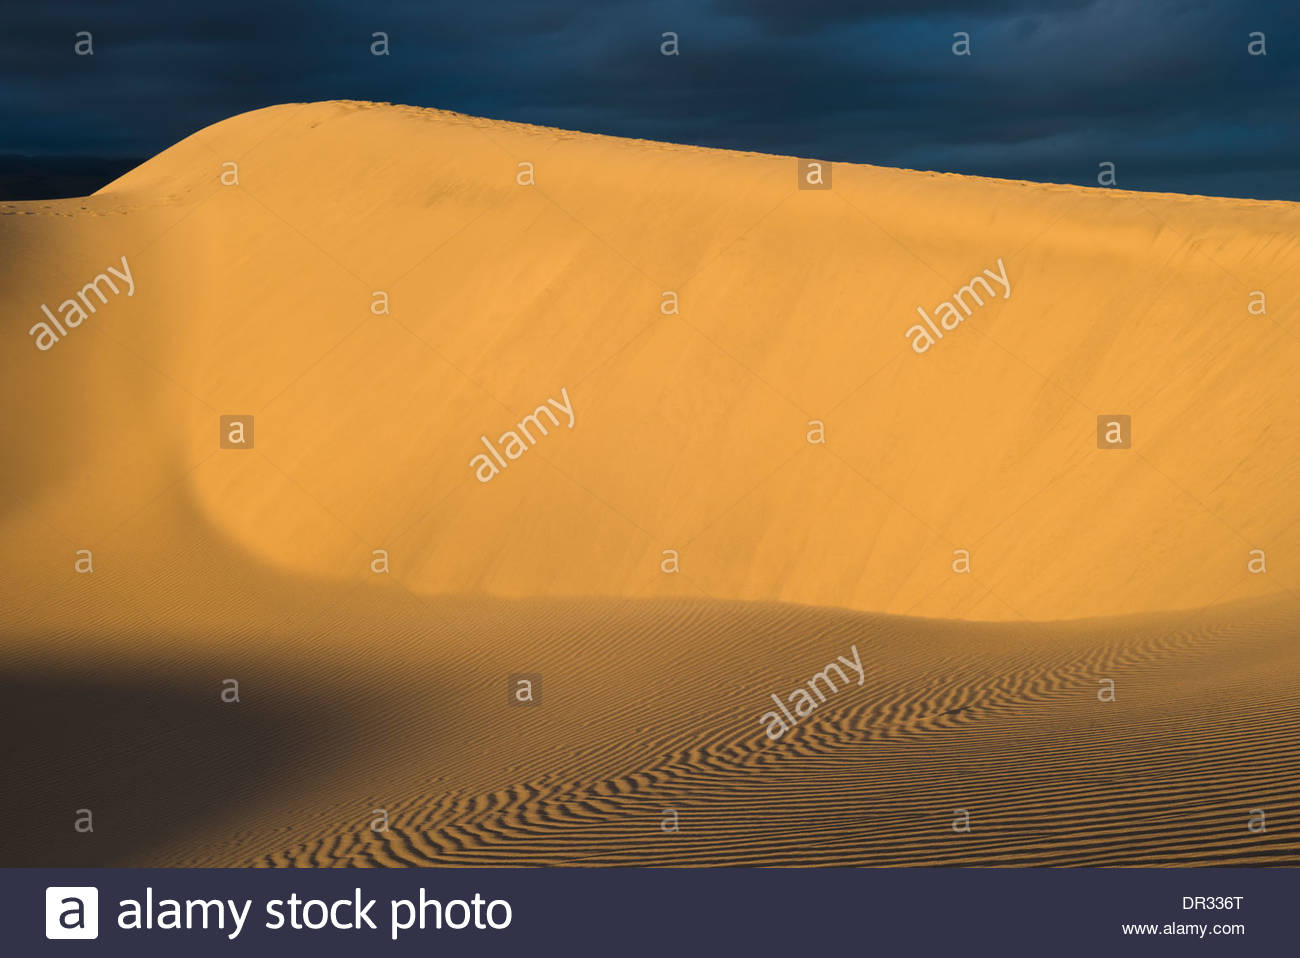 sand-dune-at-maspalomas-gran-canaria-canary-islands-spain-DR336T.jpg